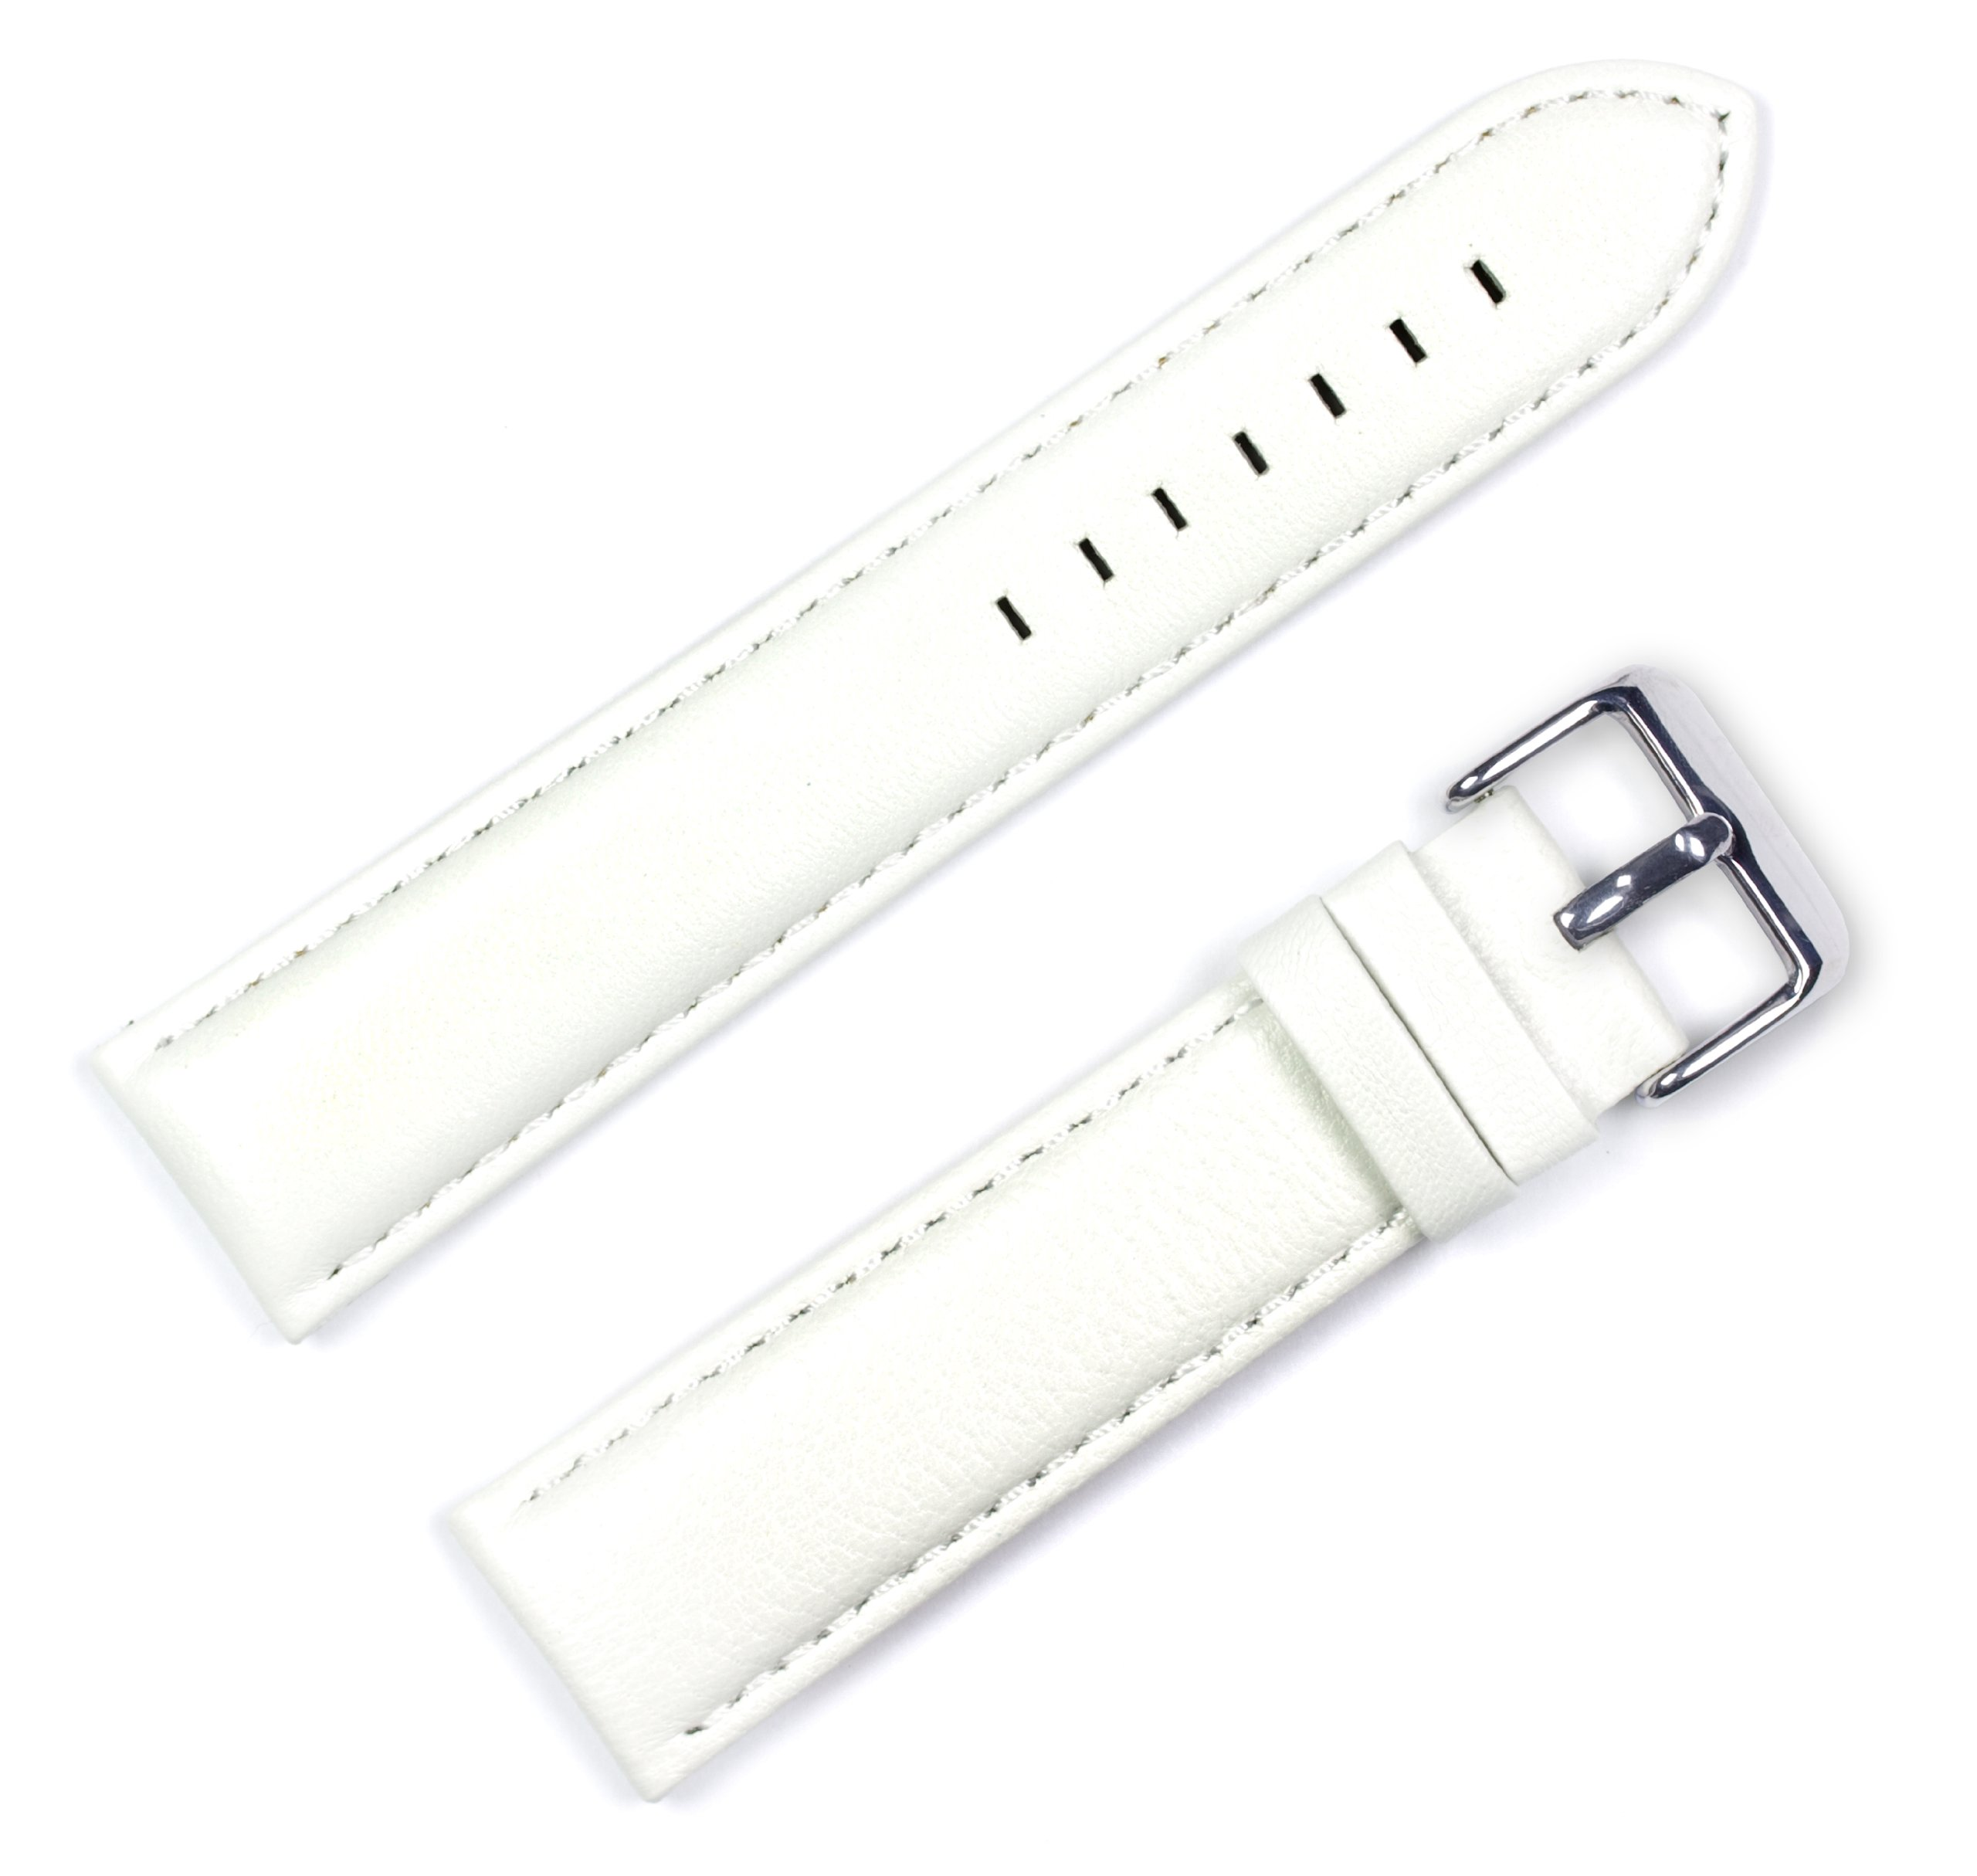 Panerai Style Glove Leather Watchband White 16mm Watch band - by deBeer